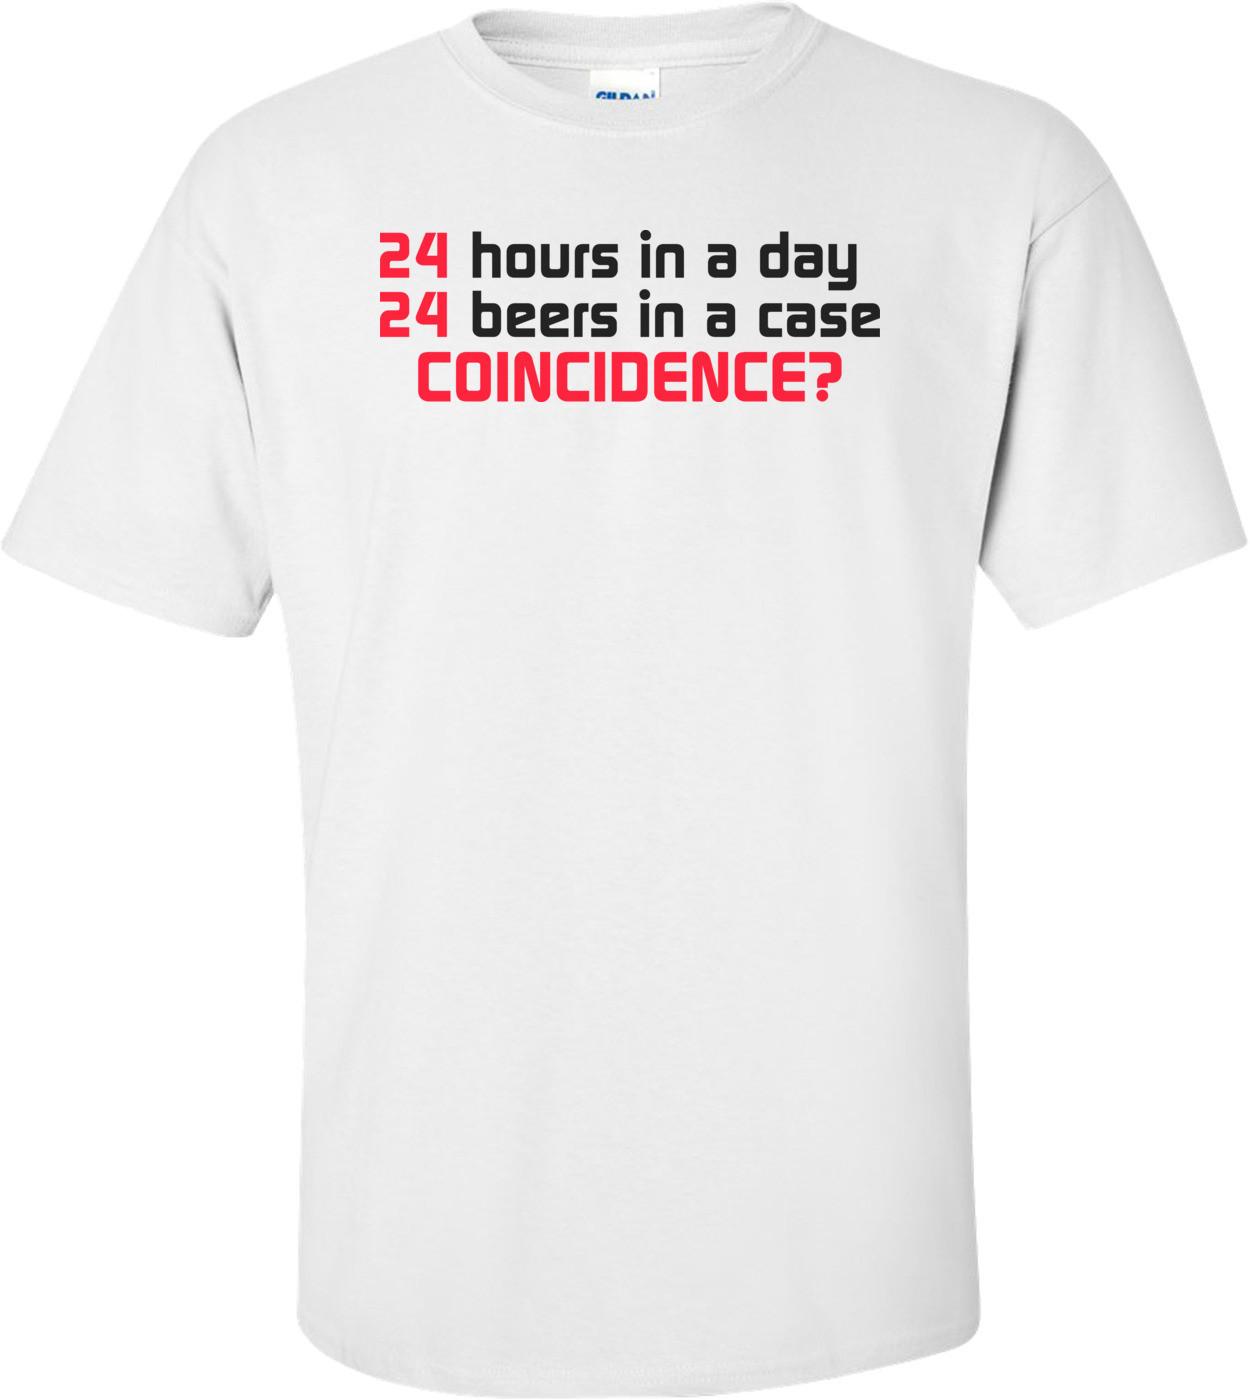 24 Hours In A Day, 24 Beers In A Case. Coincidence?